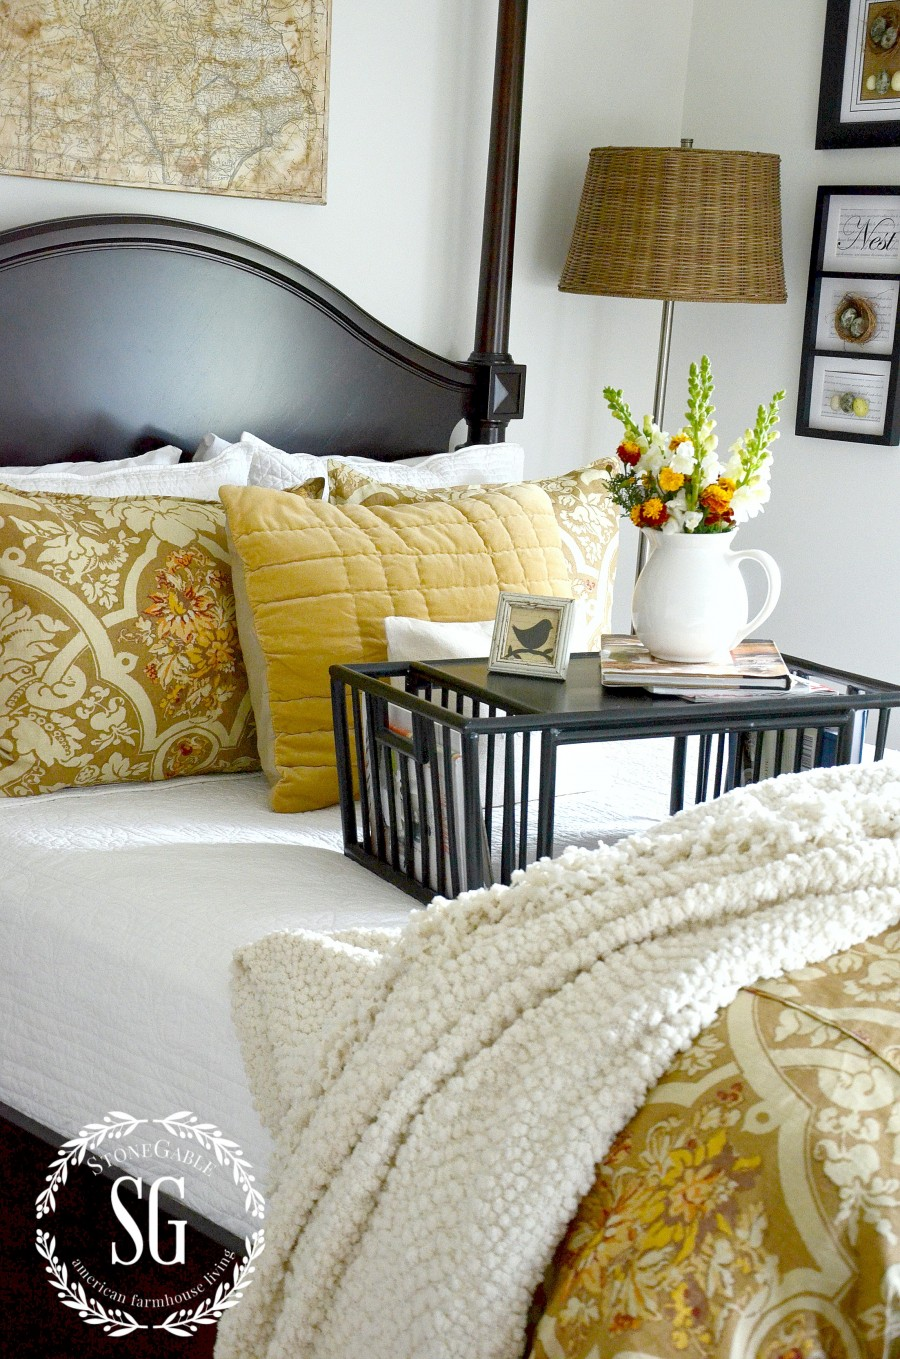 how to get oil out of bedding